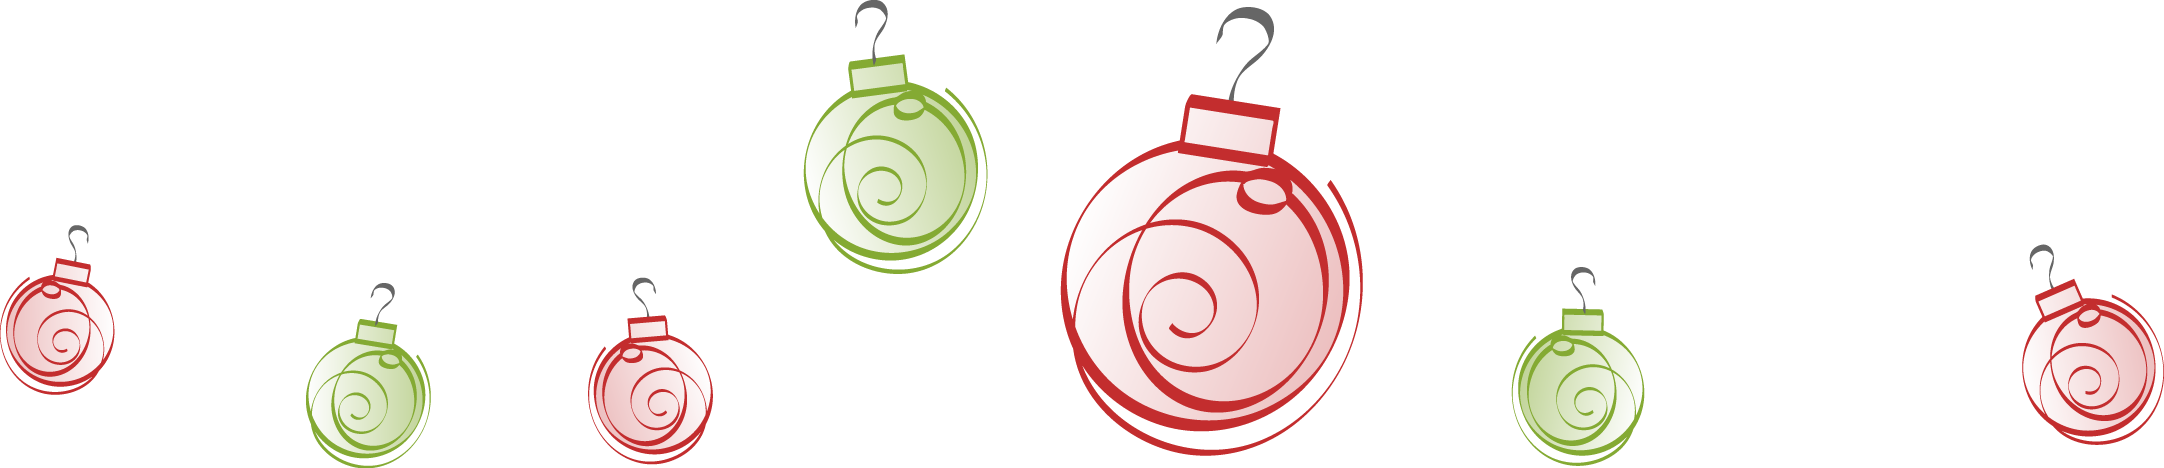 6c542b025eeae25c7abae4b0768cbbec_holiday-clipart-staff-party-pencil-and-in-color-holiday-clipart-holiday-luncheon-clipart_2164-468.png